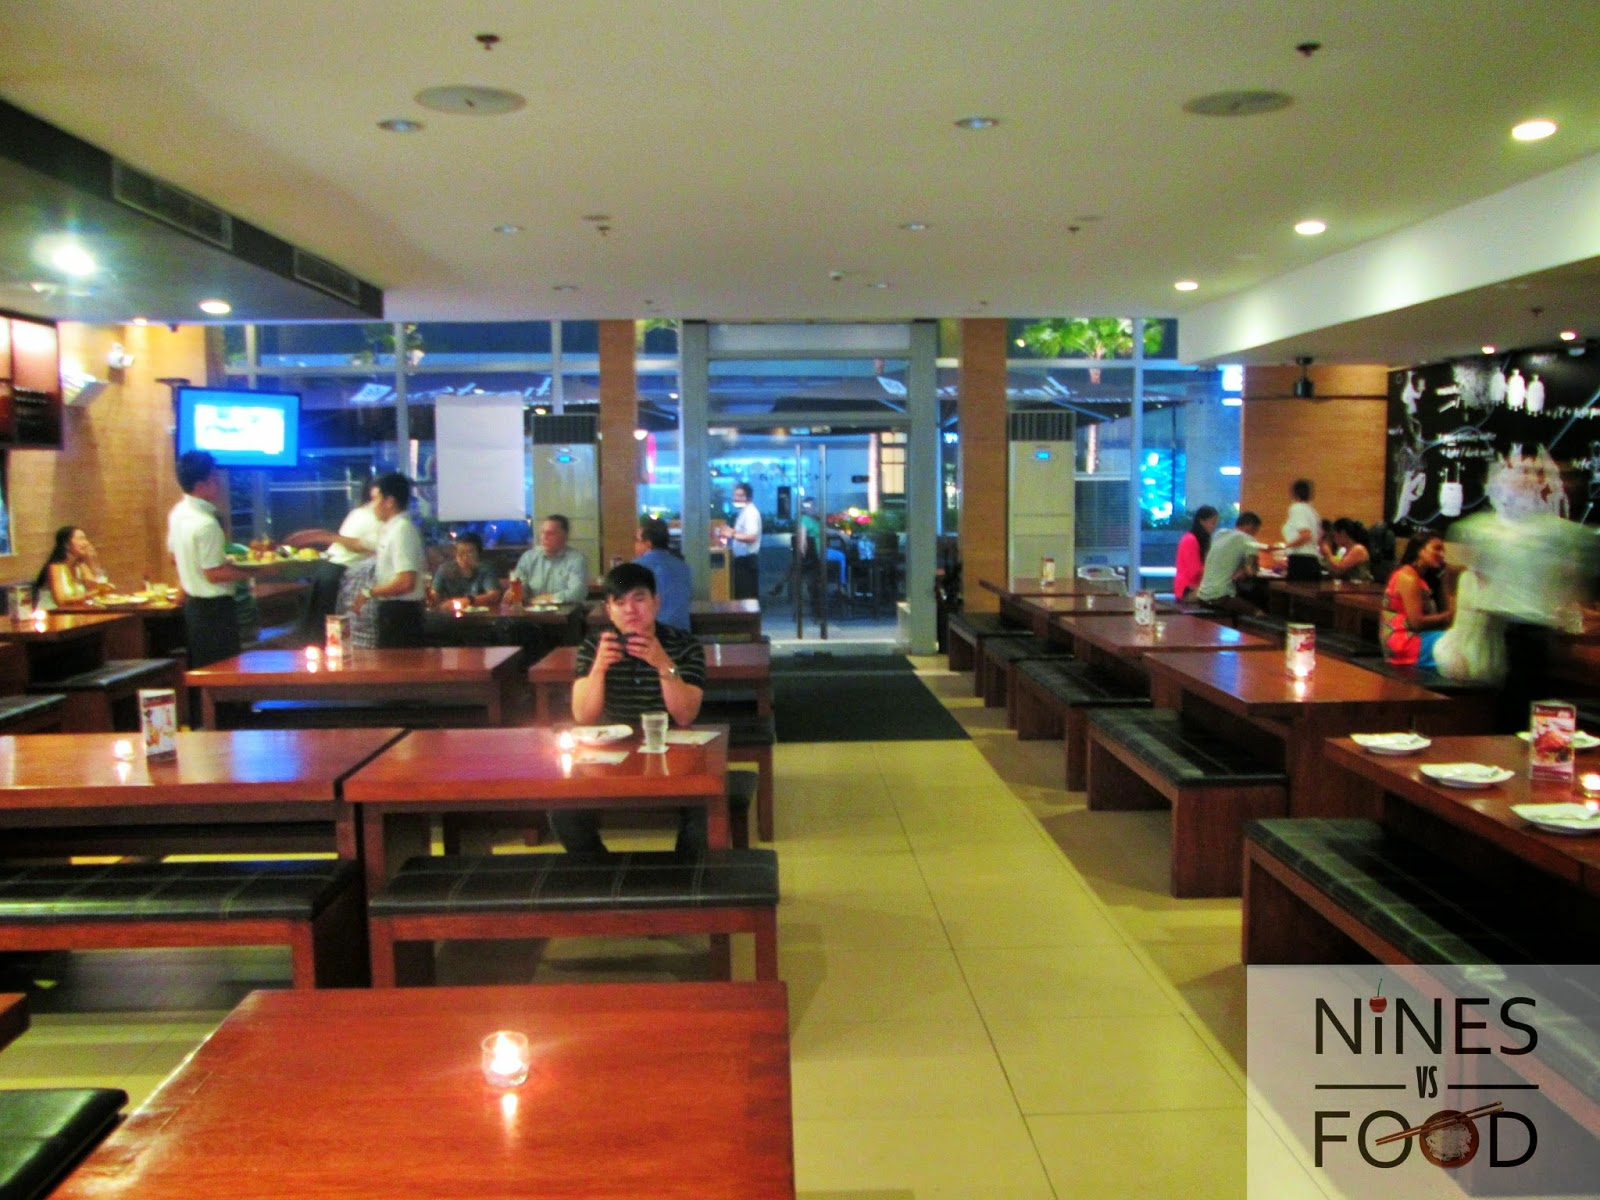 Nines vs. Food - Brotzeit Shangri-la Mall-2.jpg